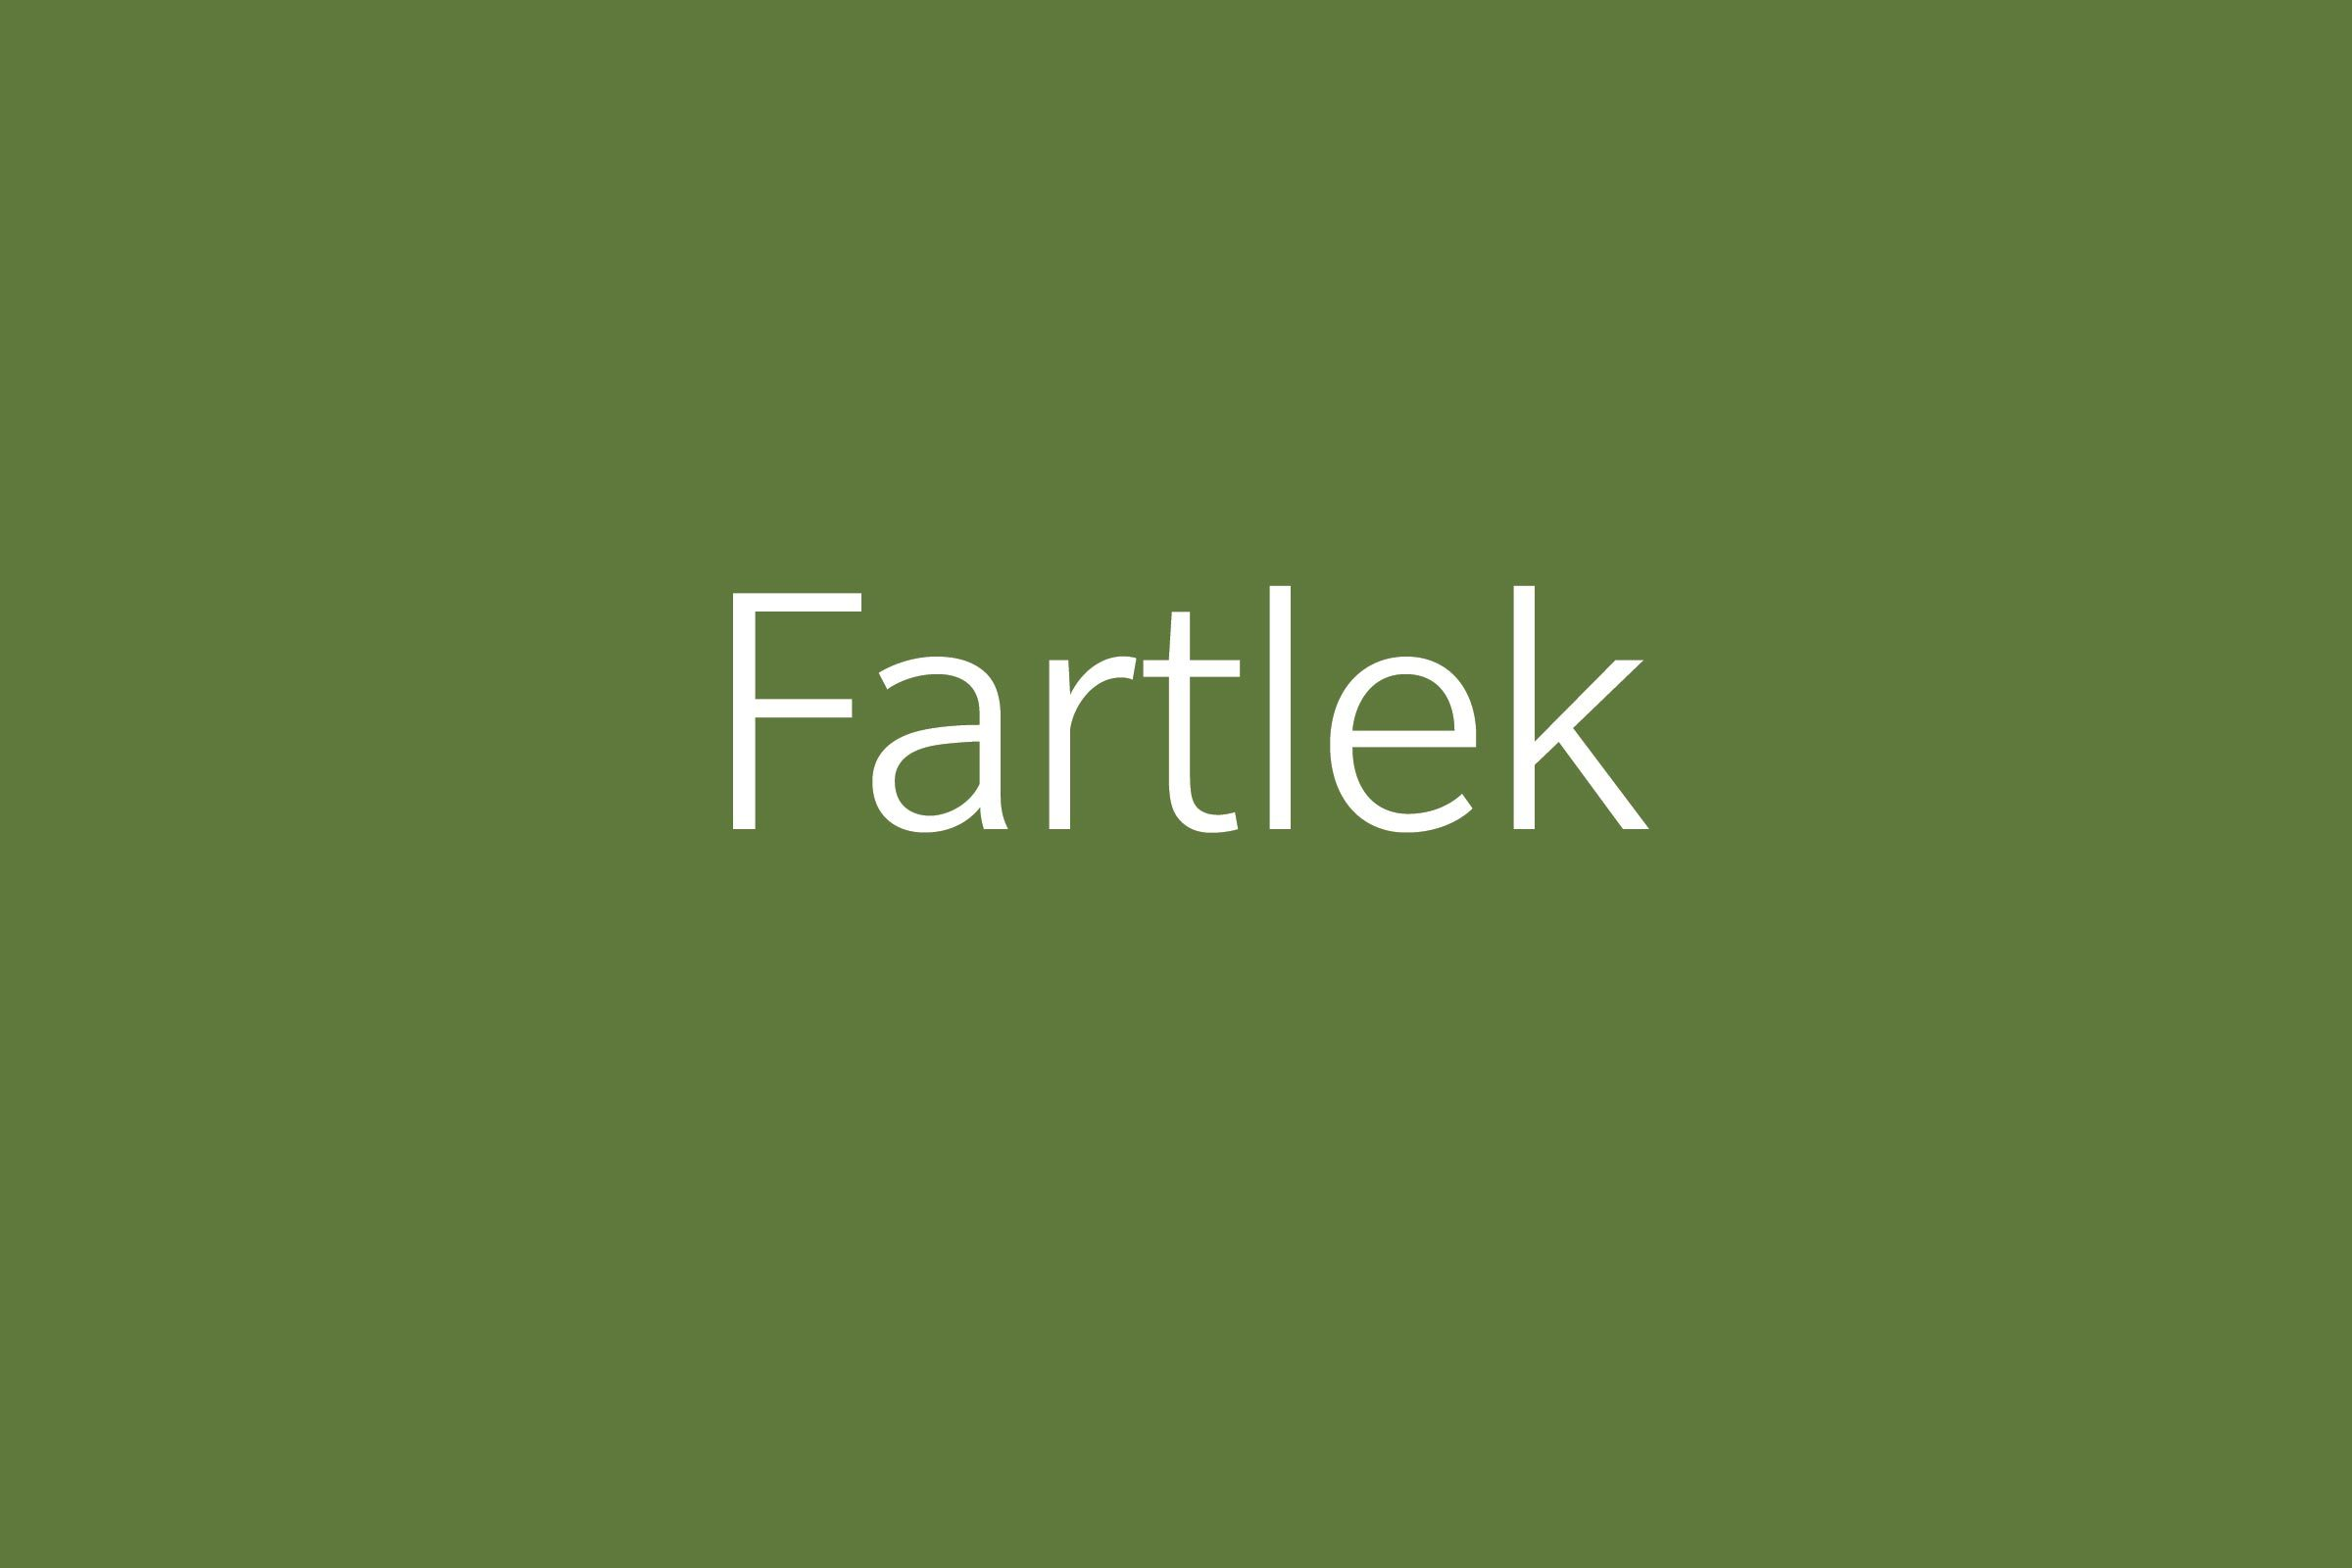 fartlek funny word Funny words